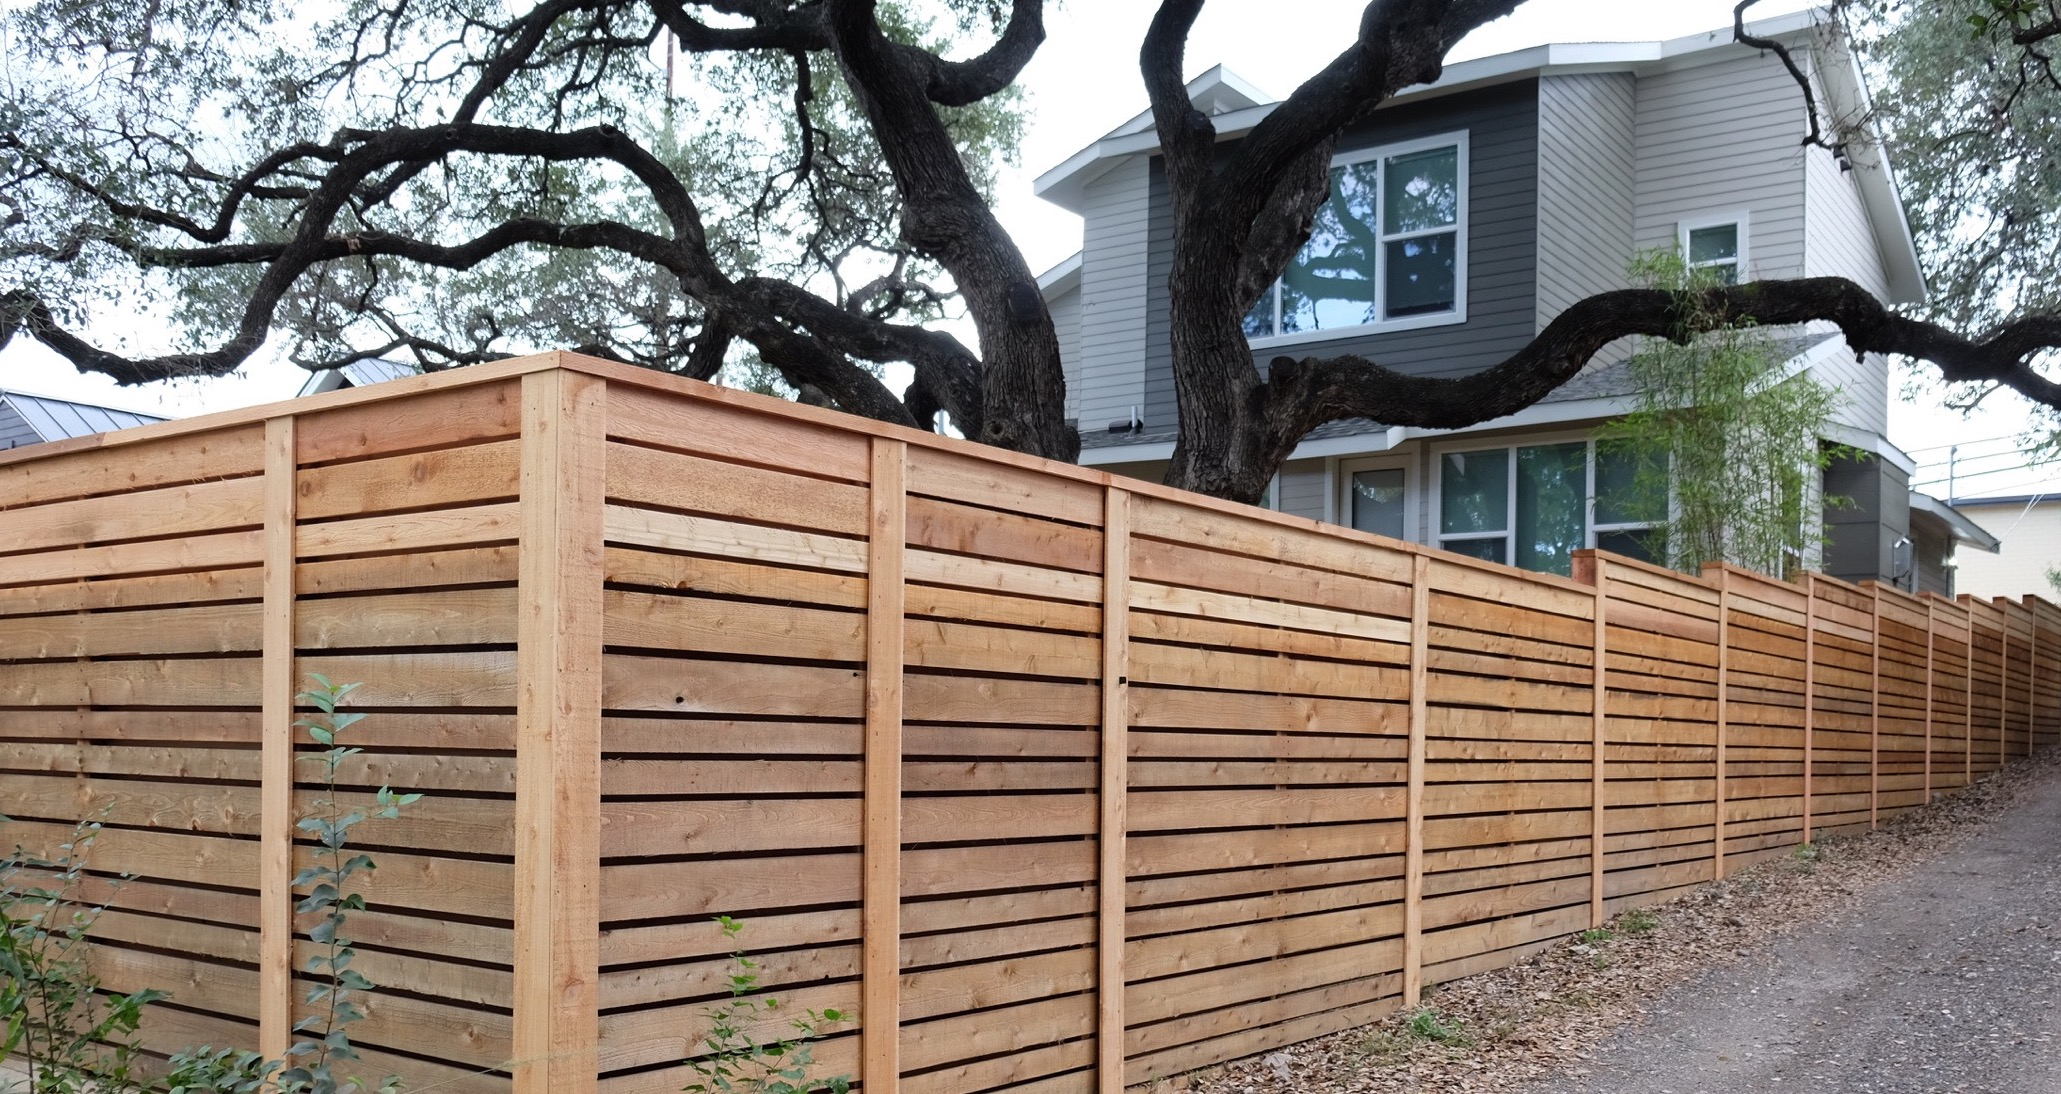 Austin brothers fence company quality fence installation semi private wood fence with horizontal alternating picket design and trim made by austin brothers fence co baanklon Image collections